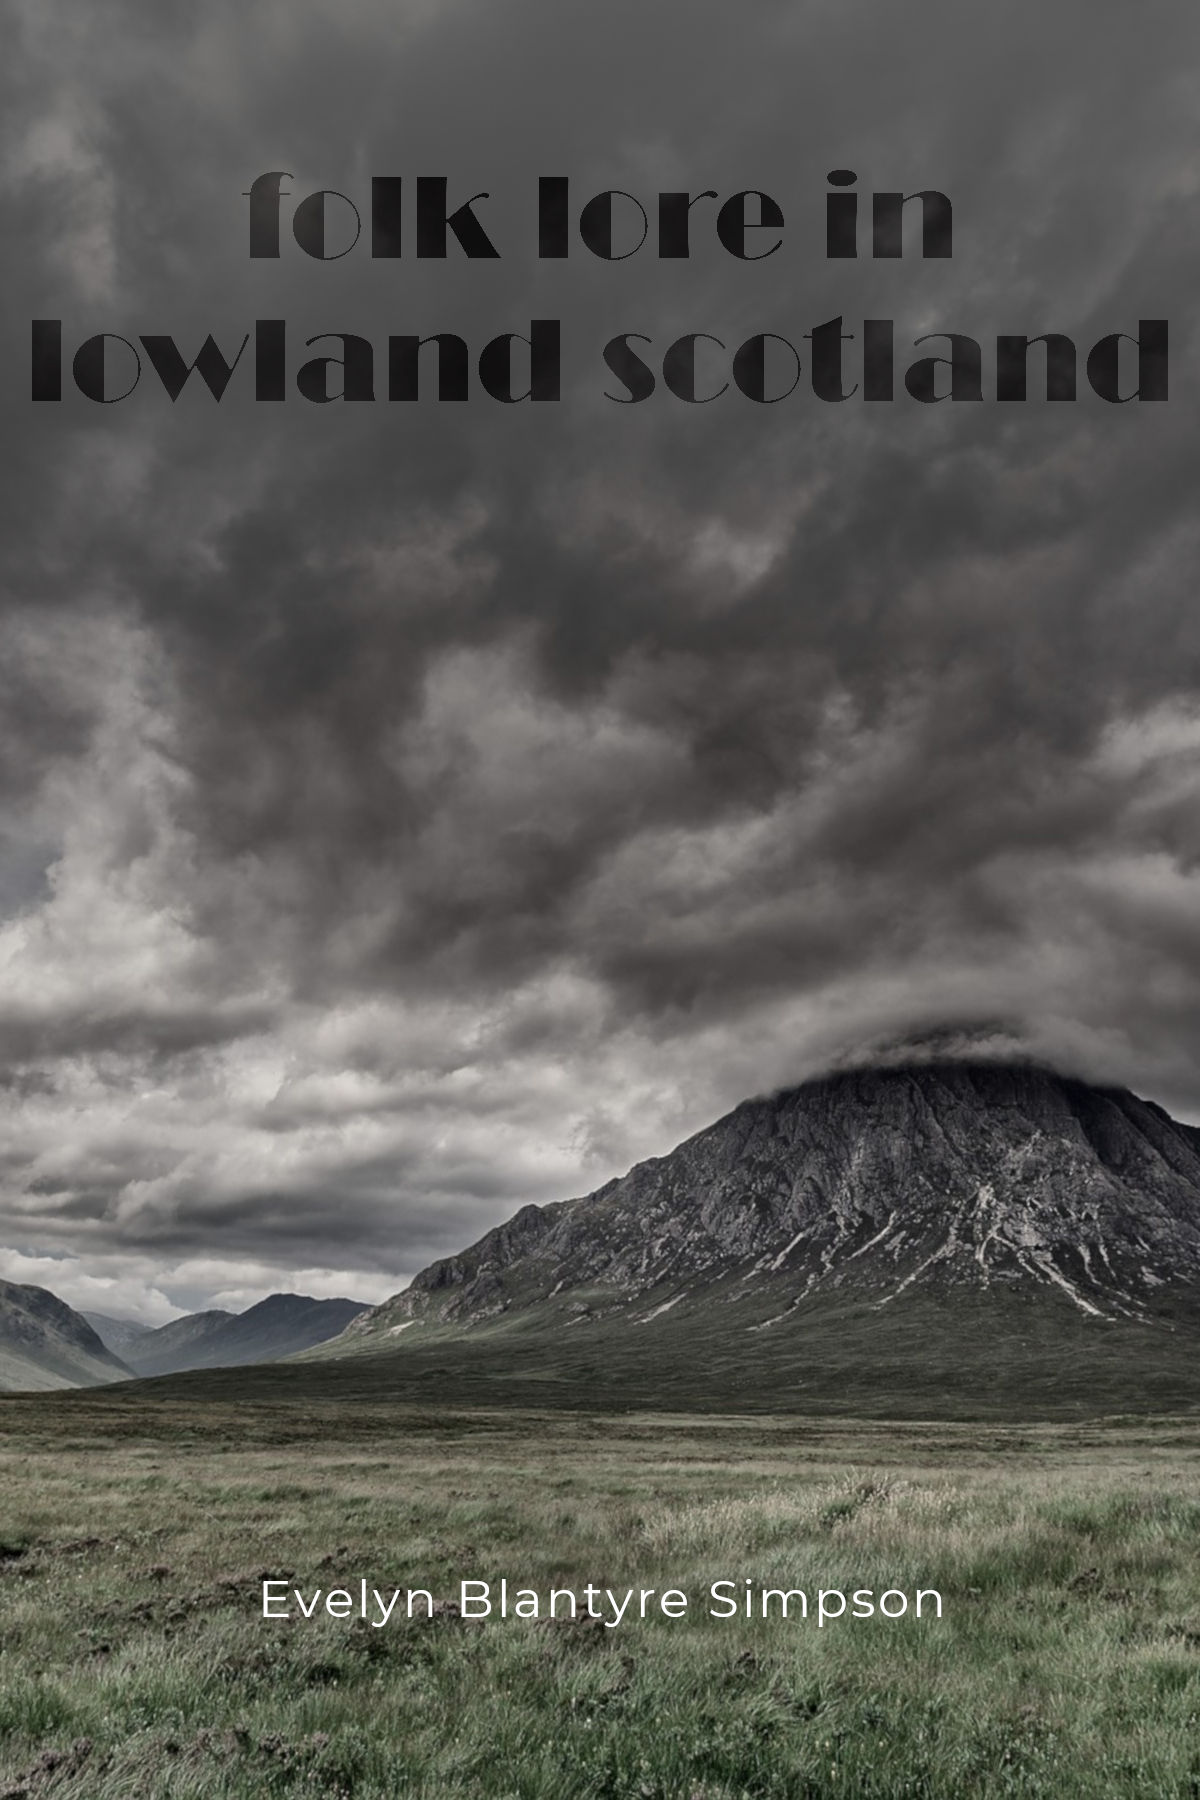 Folk lore in lowland Scotland